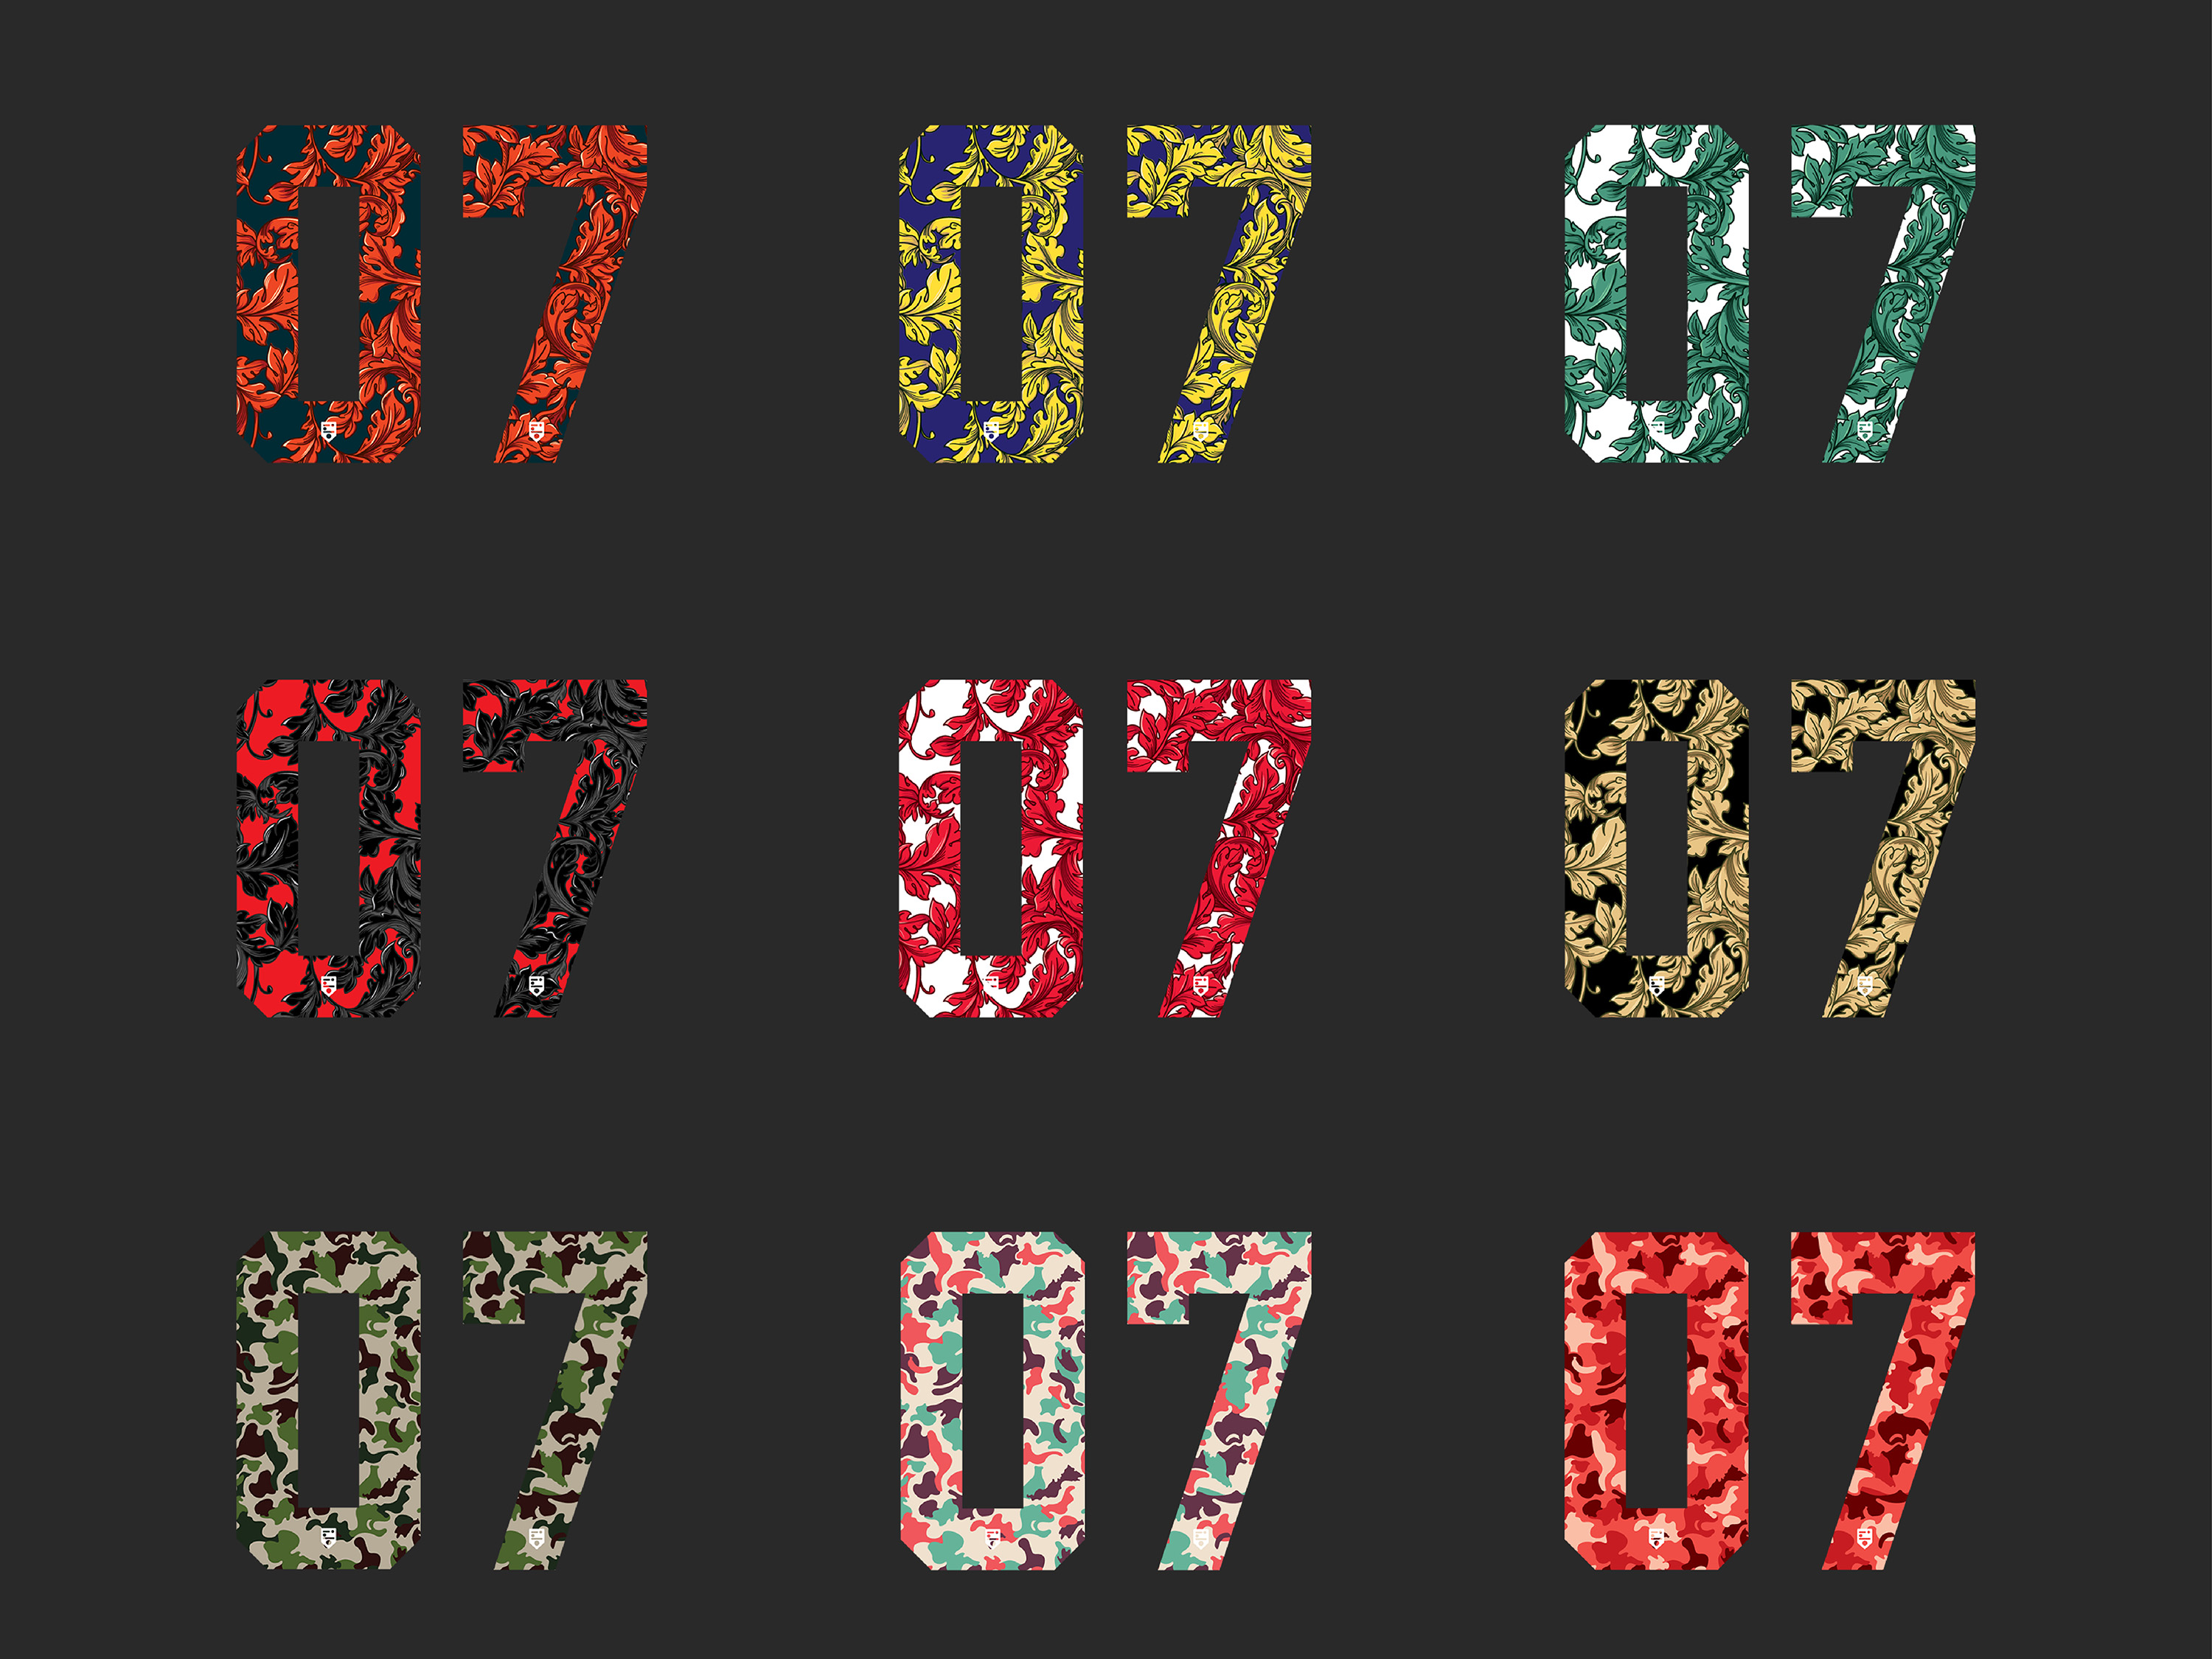 IDOTshirt branding development and brand collateral design showing illustration of number series with colourful selection of art deco leaves and camouflage patterns